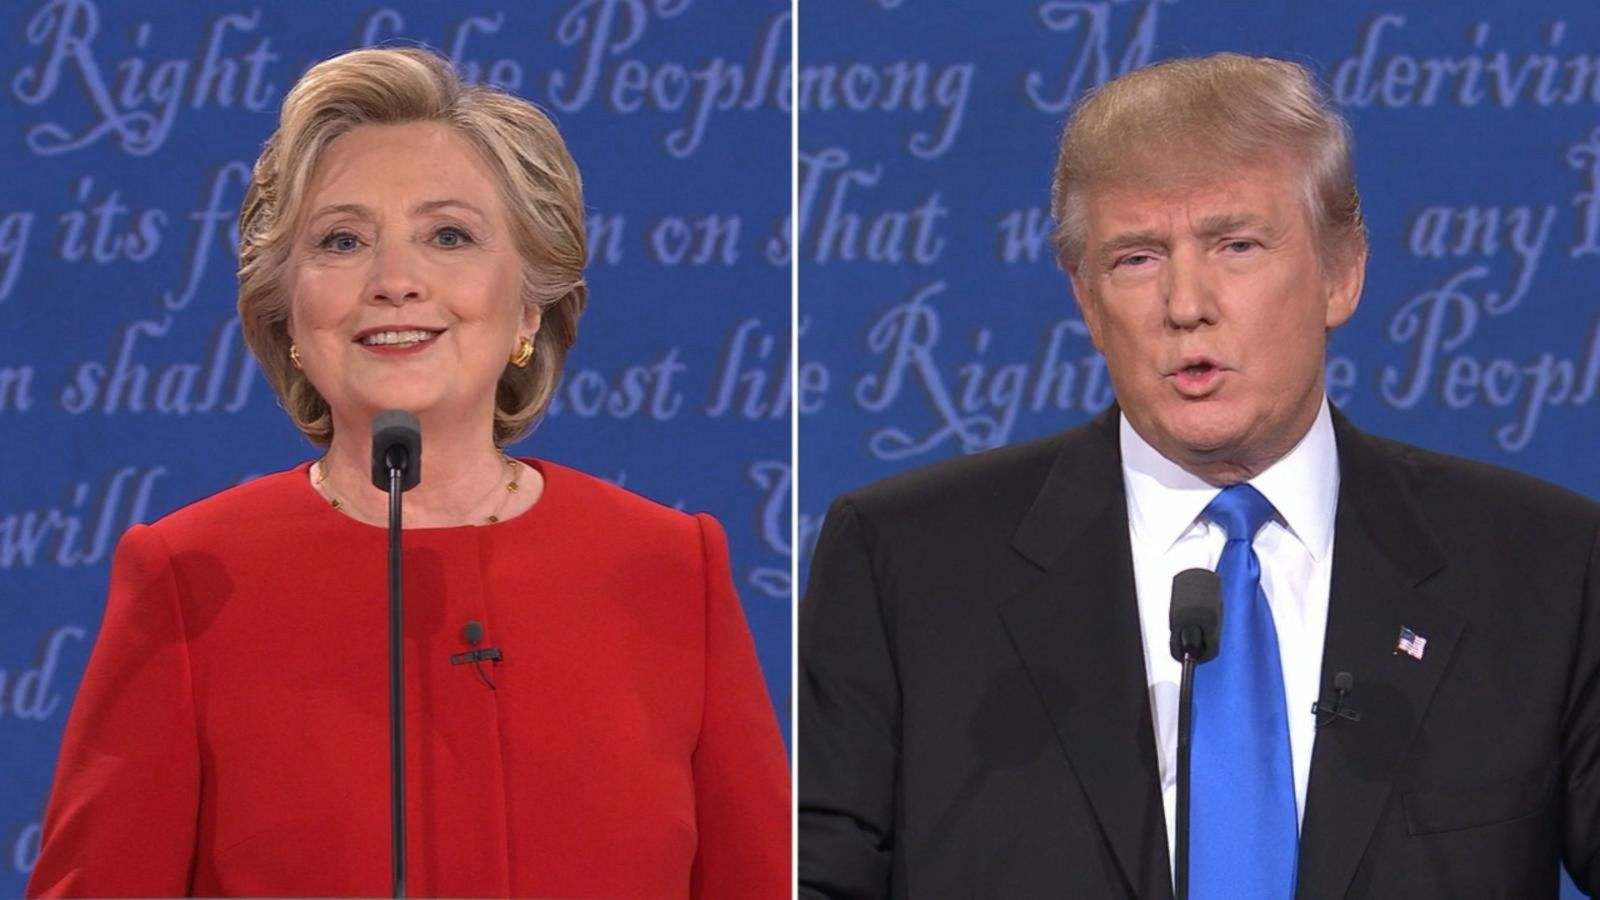 VIDEO: Debate Fact-Check: How Donald Trump and Hillary Clinton Stack Up